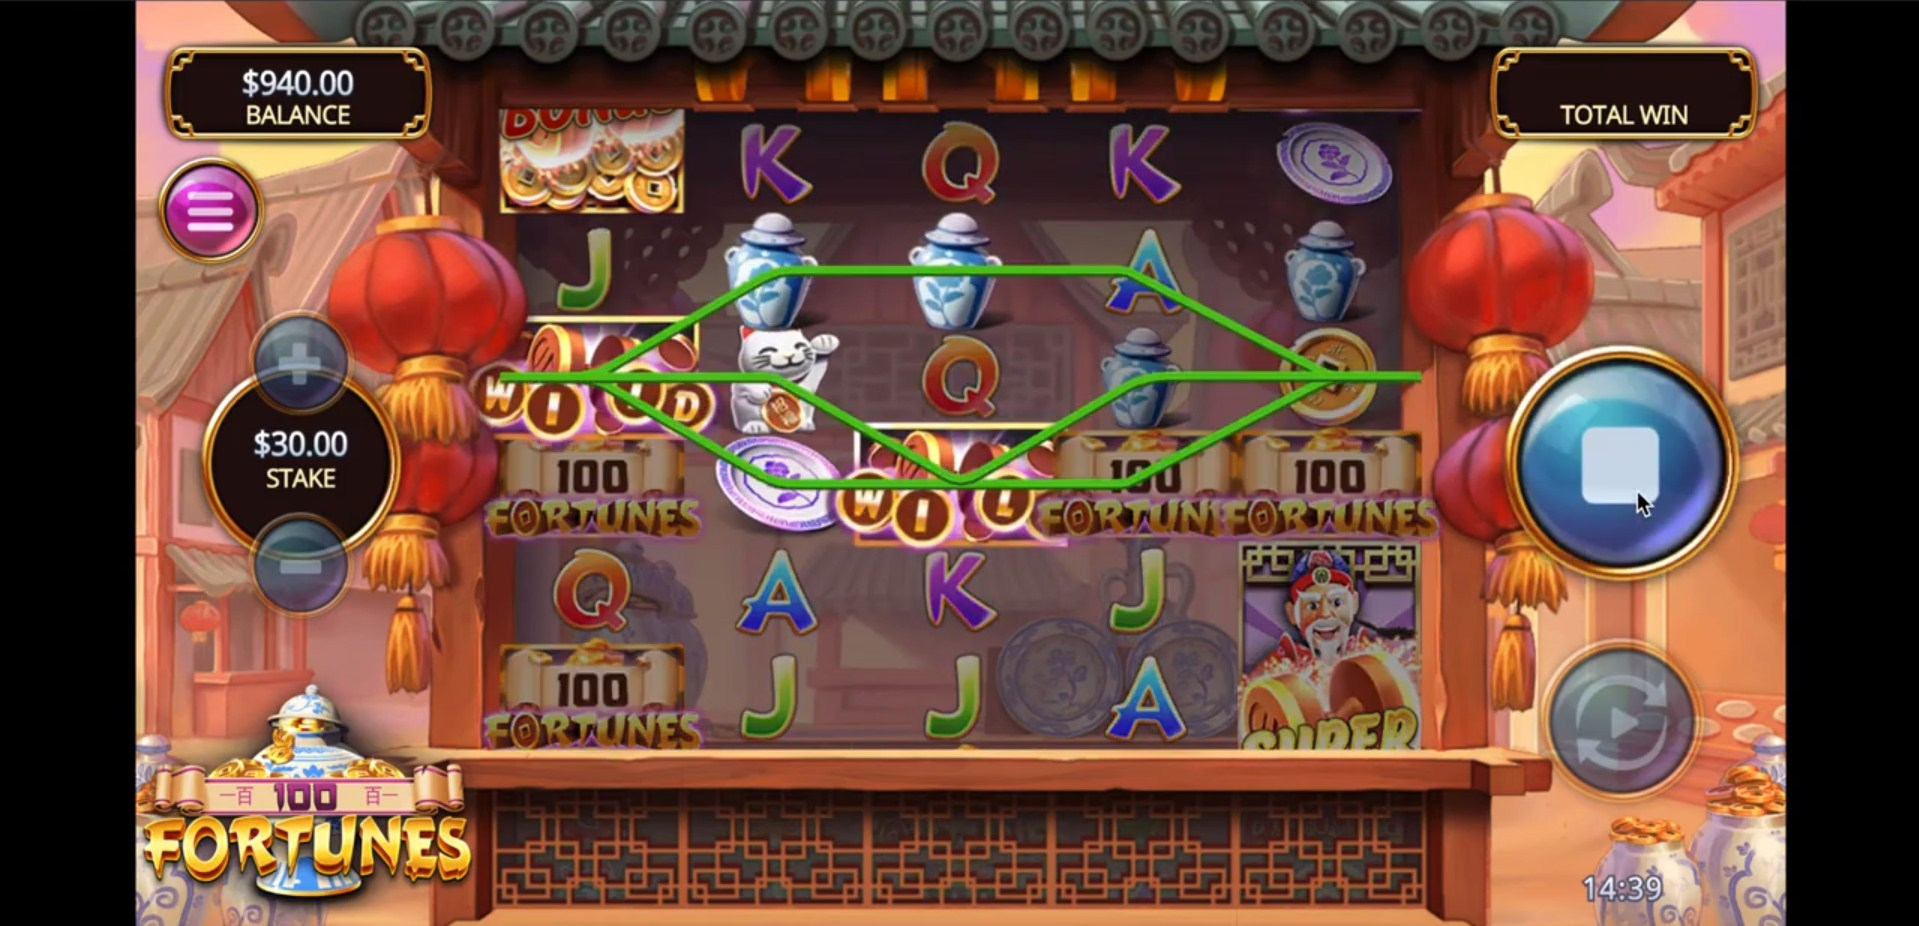 100 Fortunes Slot Gmeplay